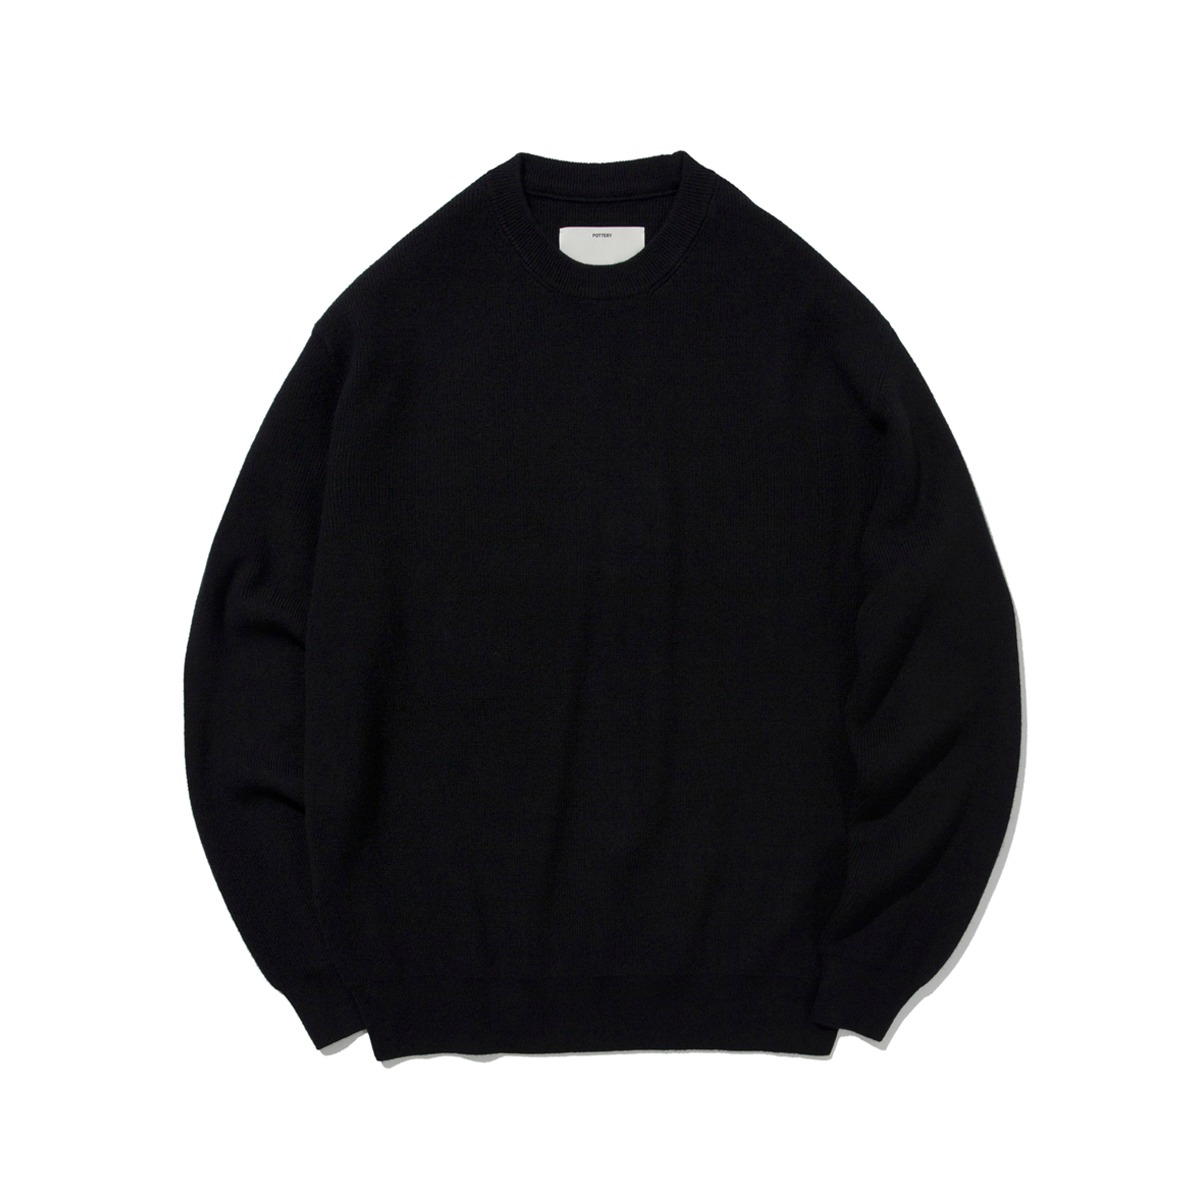 [POTTERY] COMFORT CREWNECK KNIT 'BLACK'